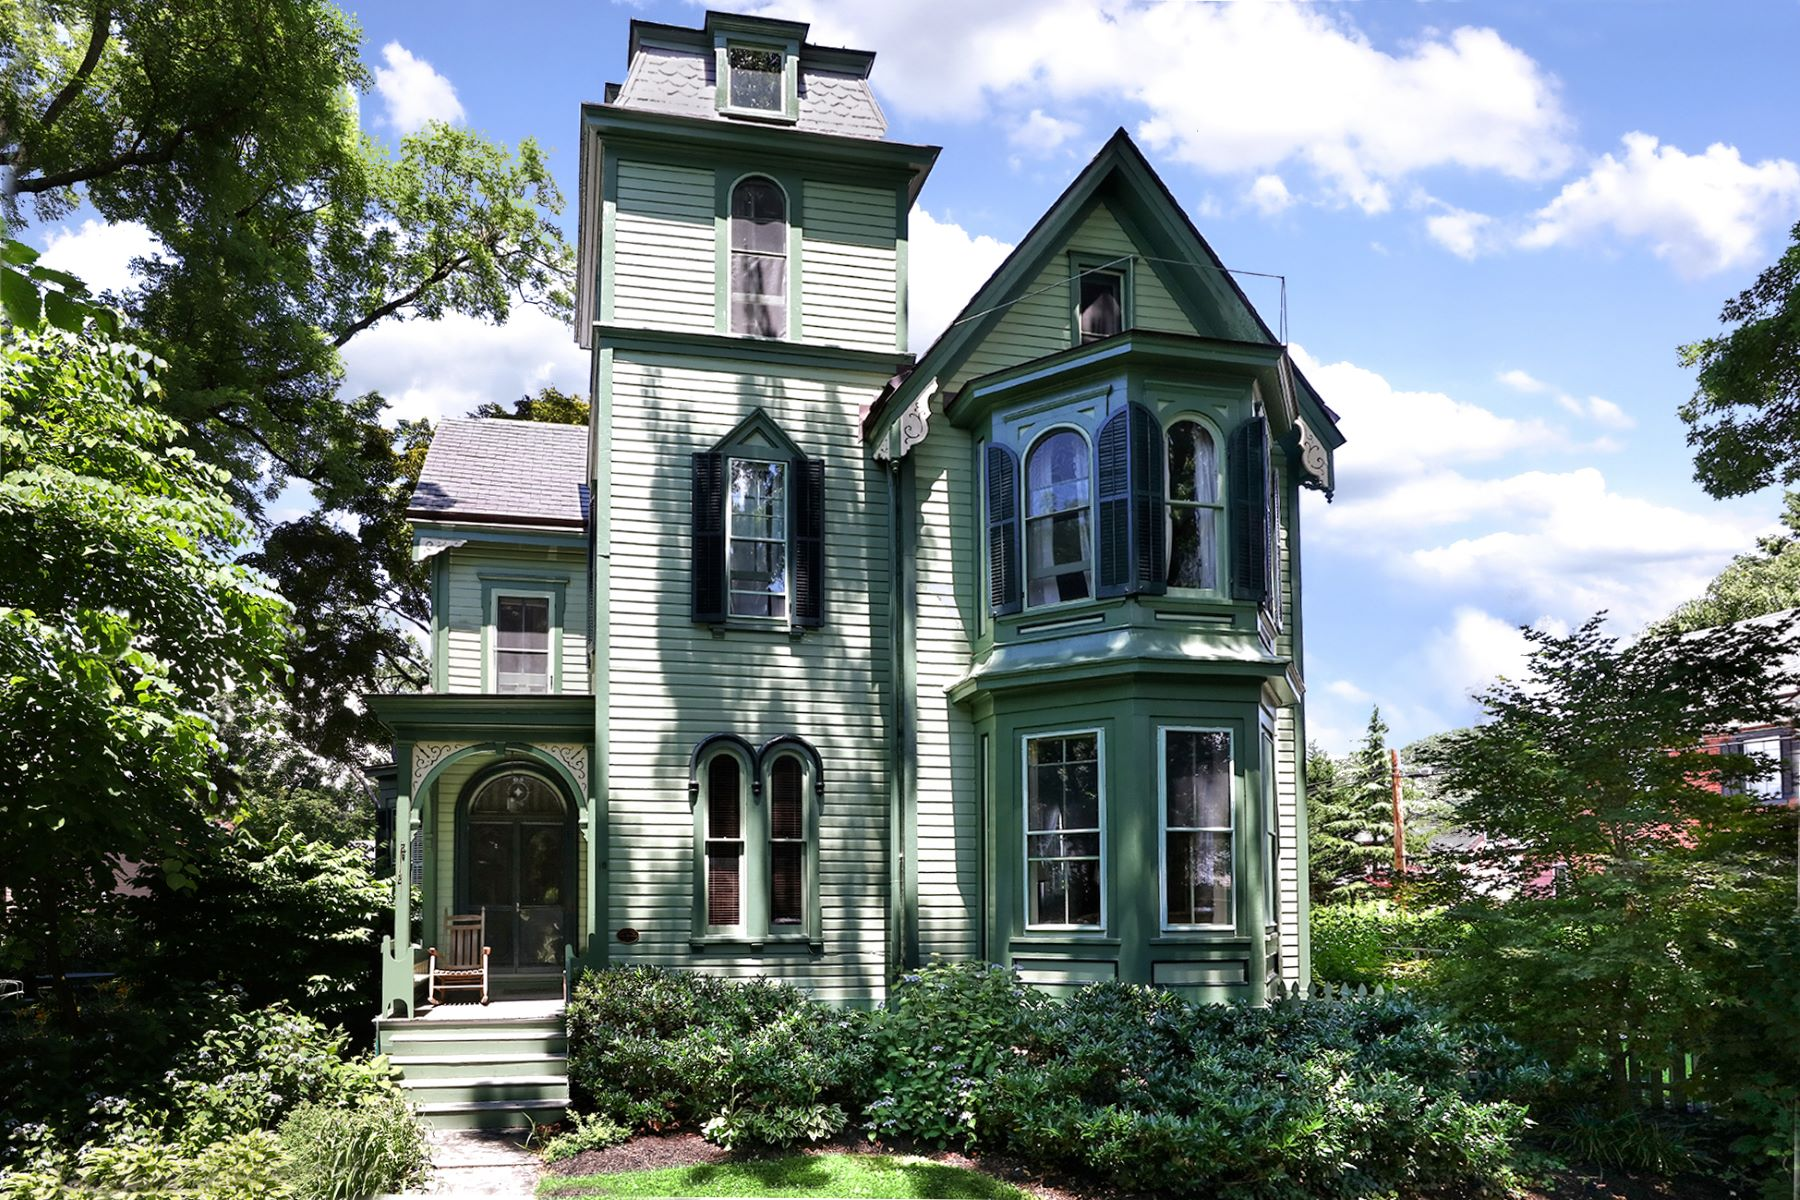 Property for Sale at A Standout With Signature Style 18 Jefferson Street, Lambertville, New Jersey 08530 United States